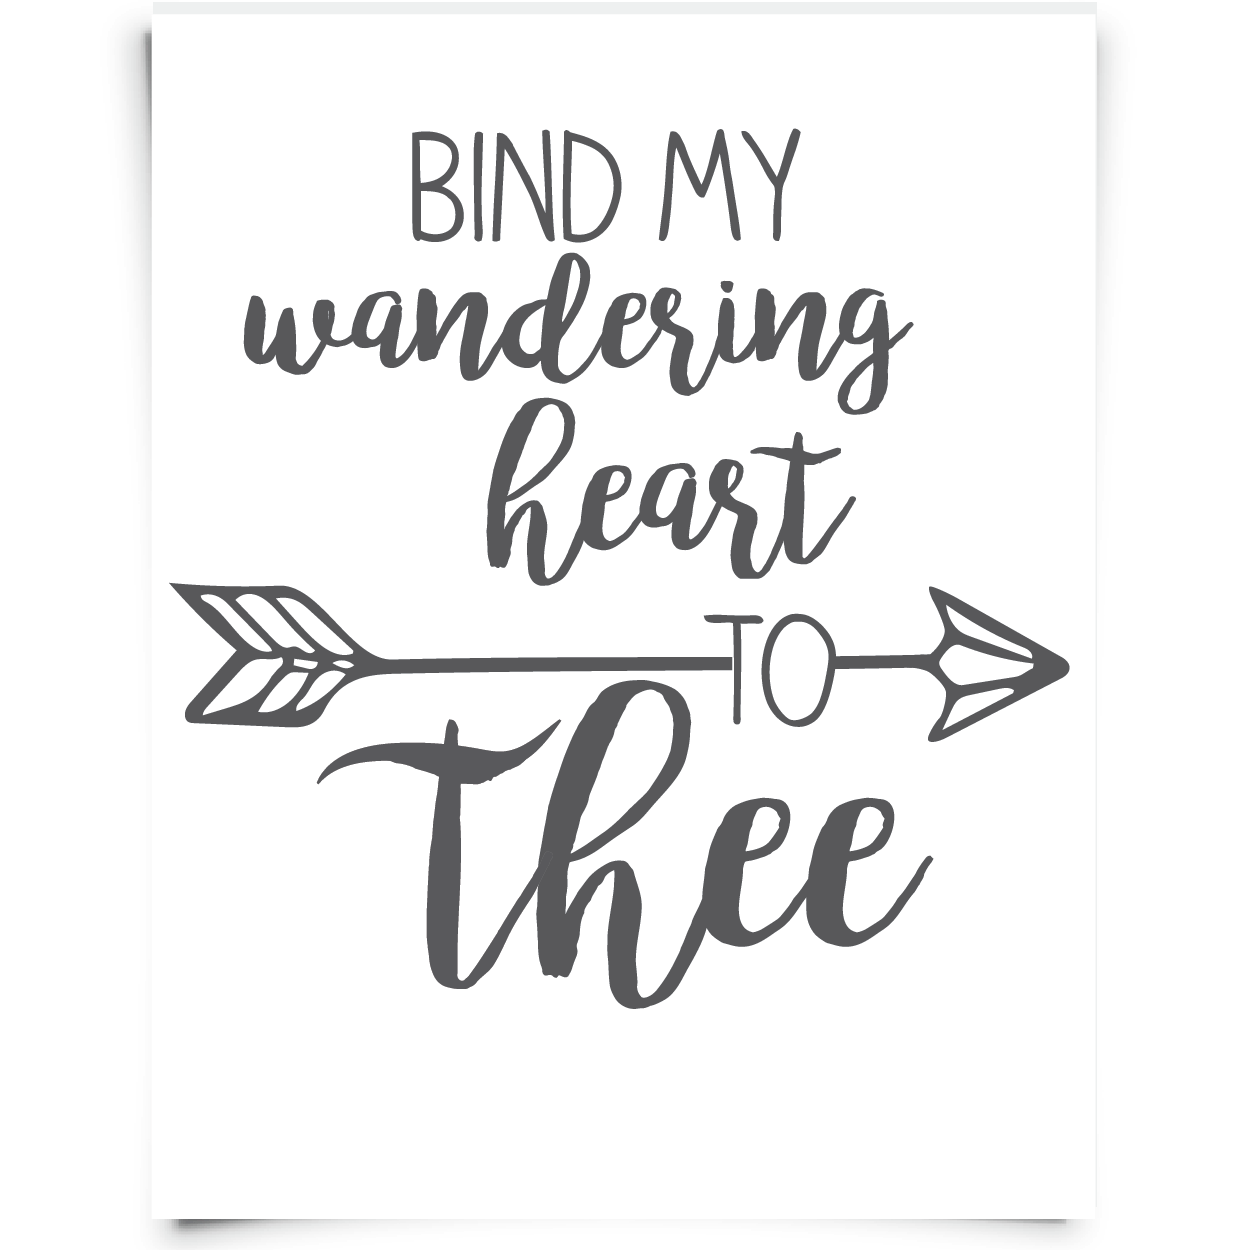 """Bind My Wandering Heart To Thee"" FREE Printable From"